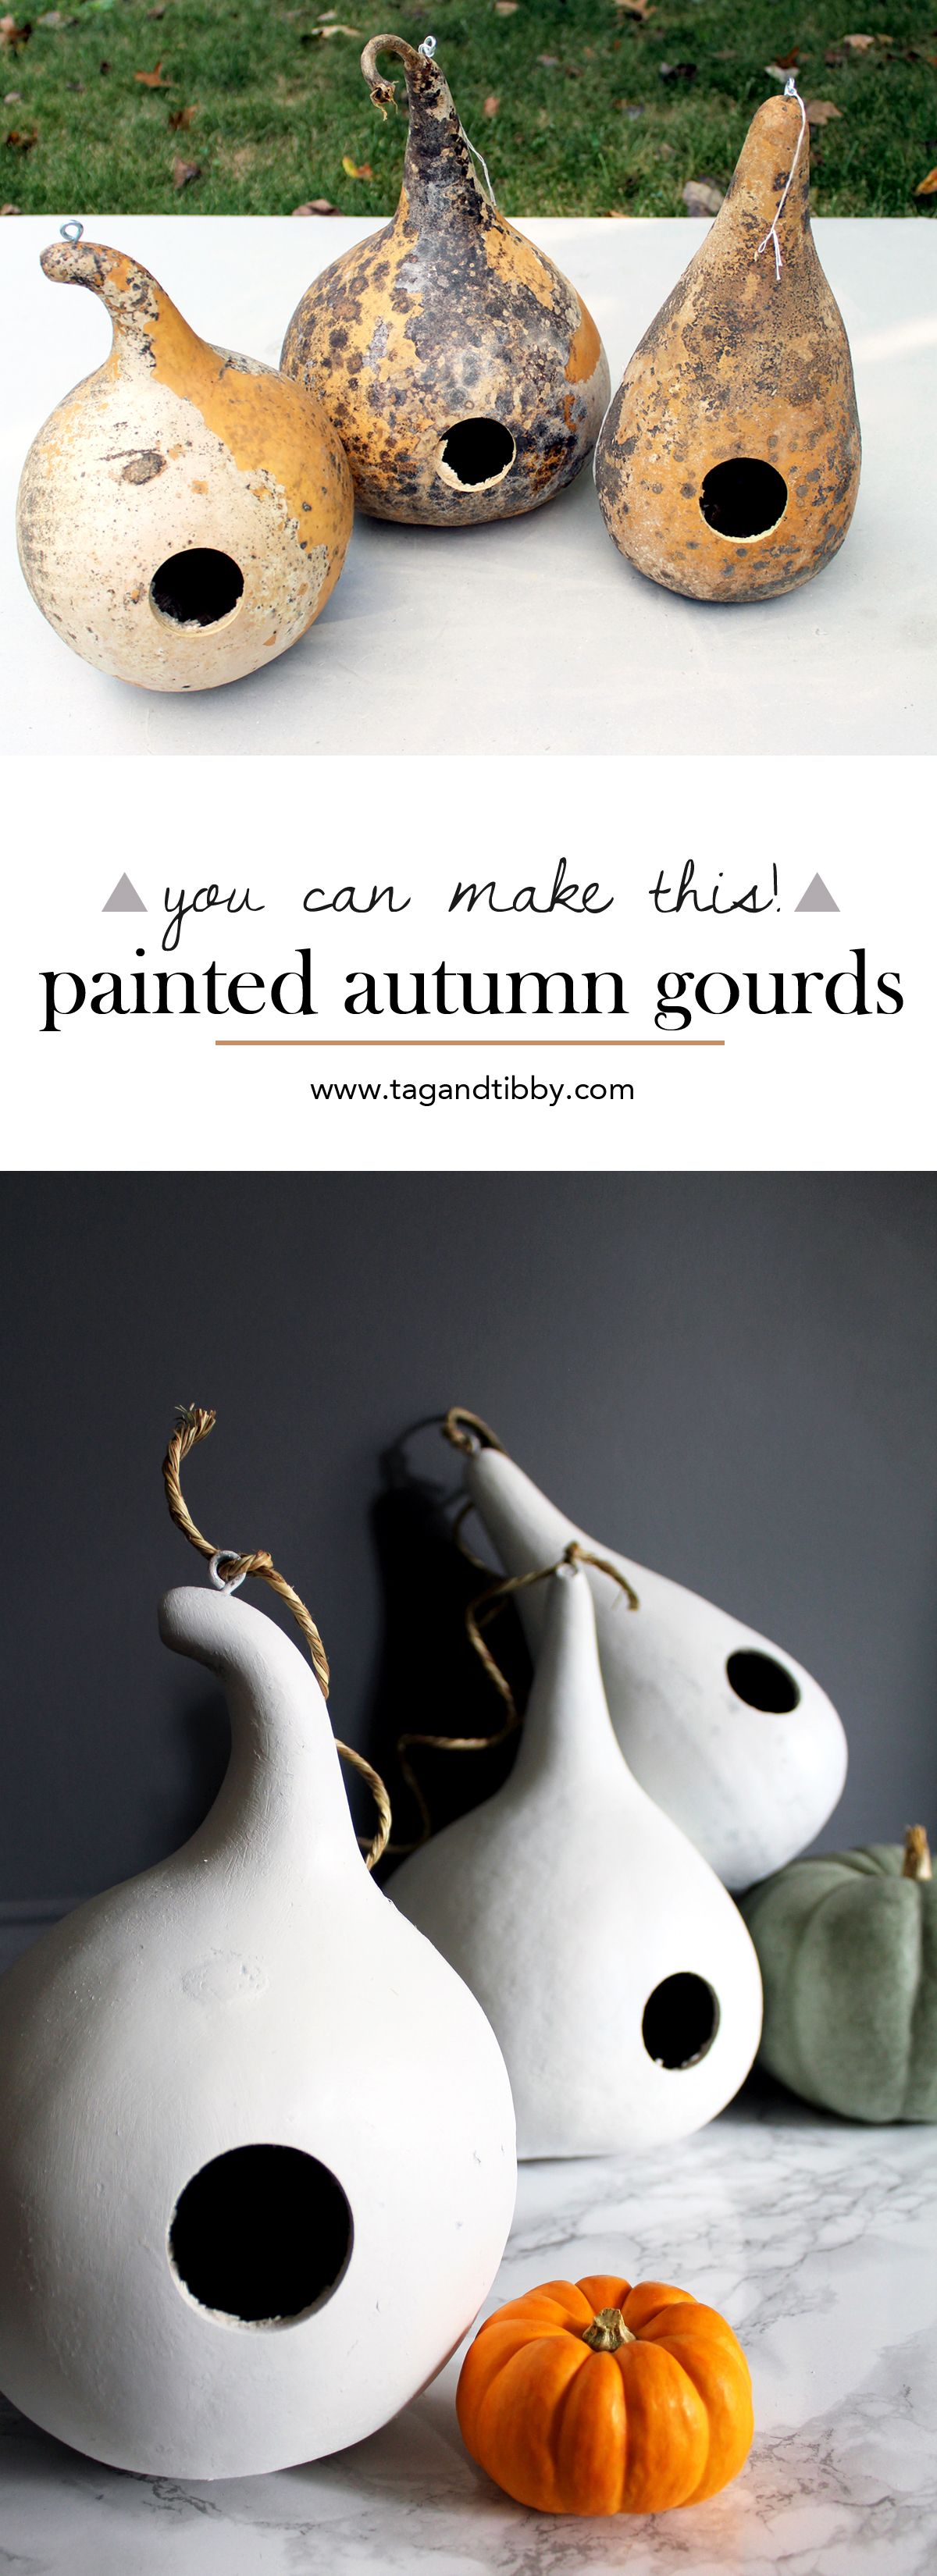 add style to your autumn gourds with white paint + grass string